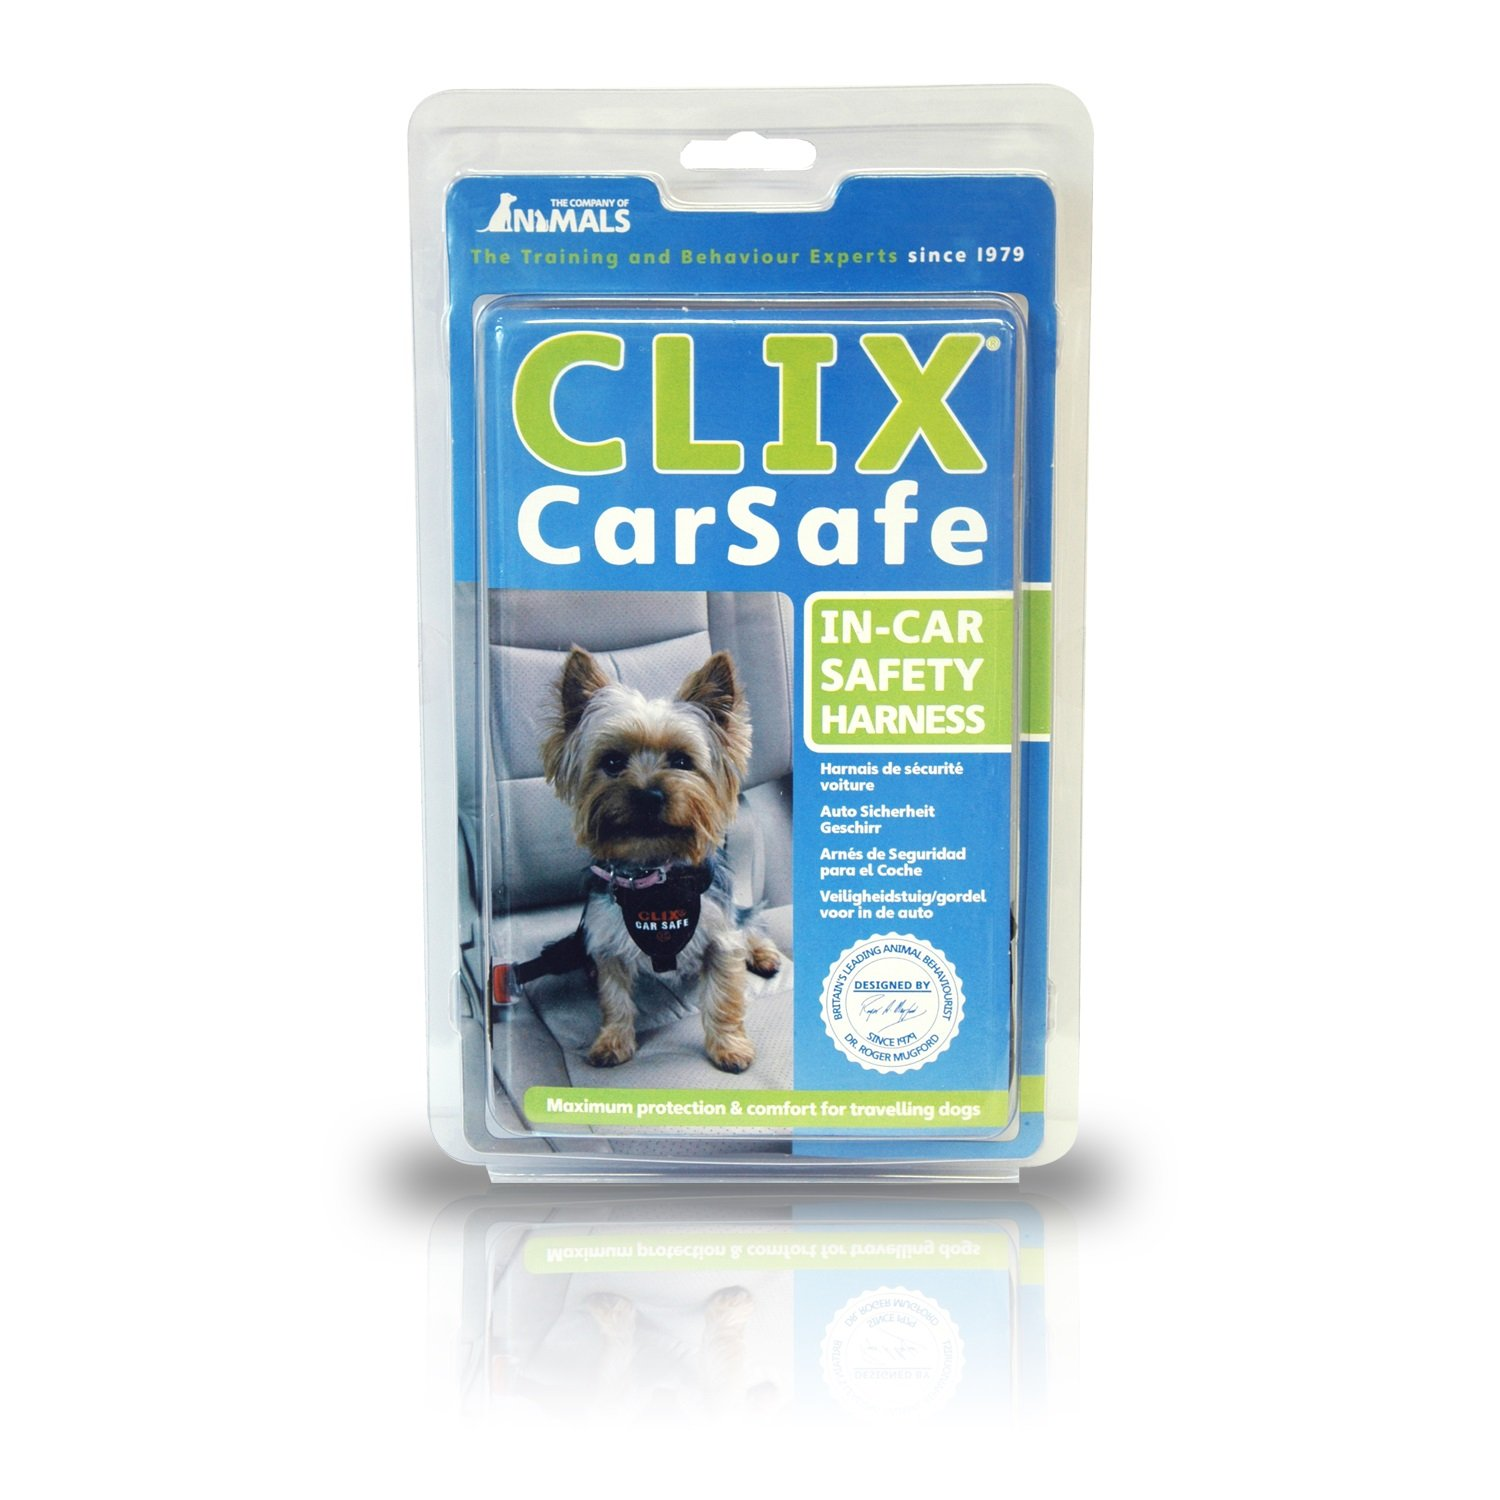 The Company of Animals - CLIX CARSAFE Dog Harness - Multi-Purpose Car Seat Belt and Walking Harness - Easy, Adjustable, Secure and Safe - X-Small